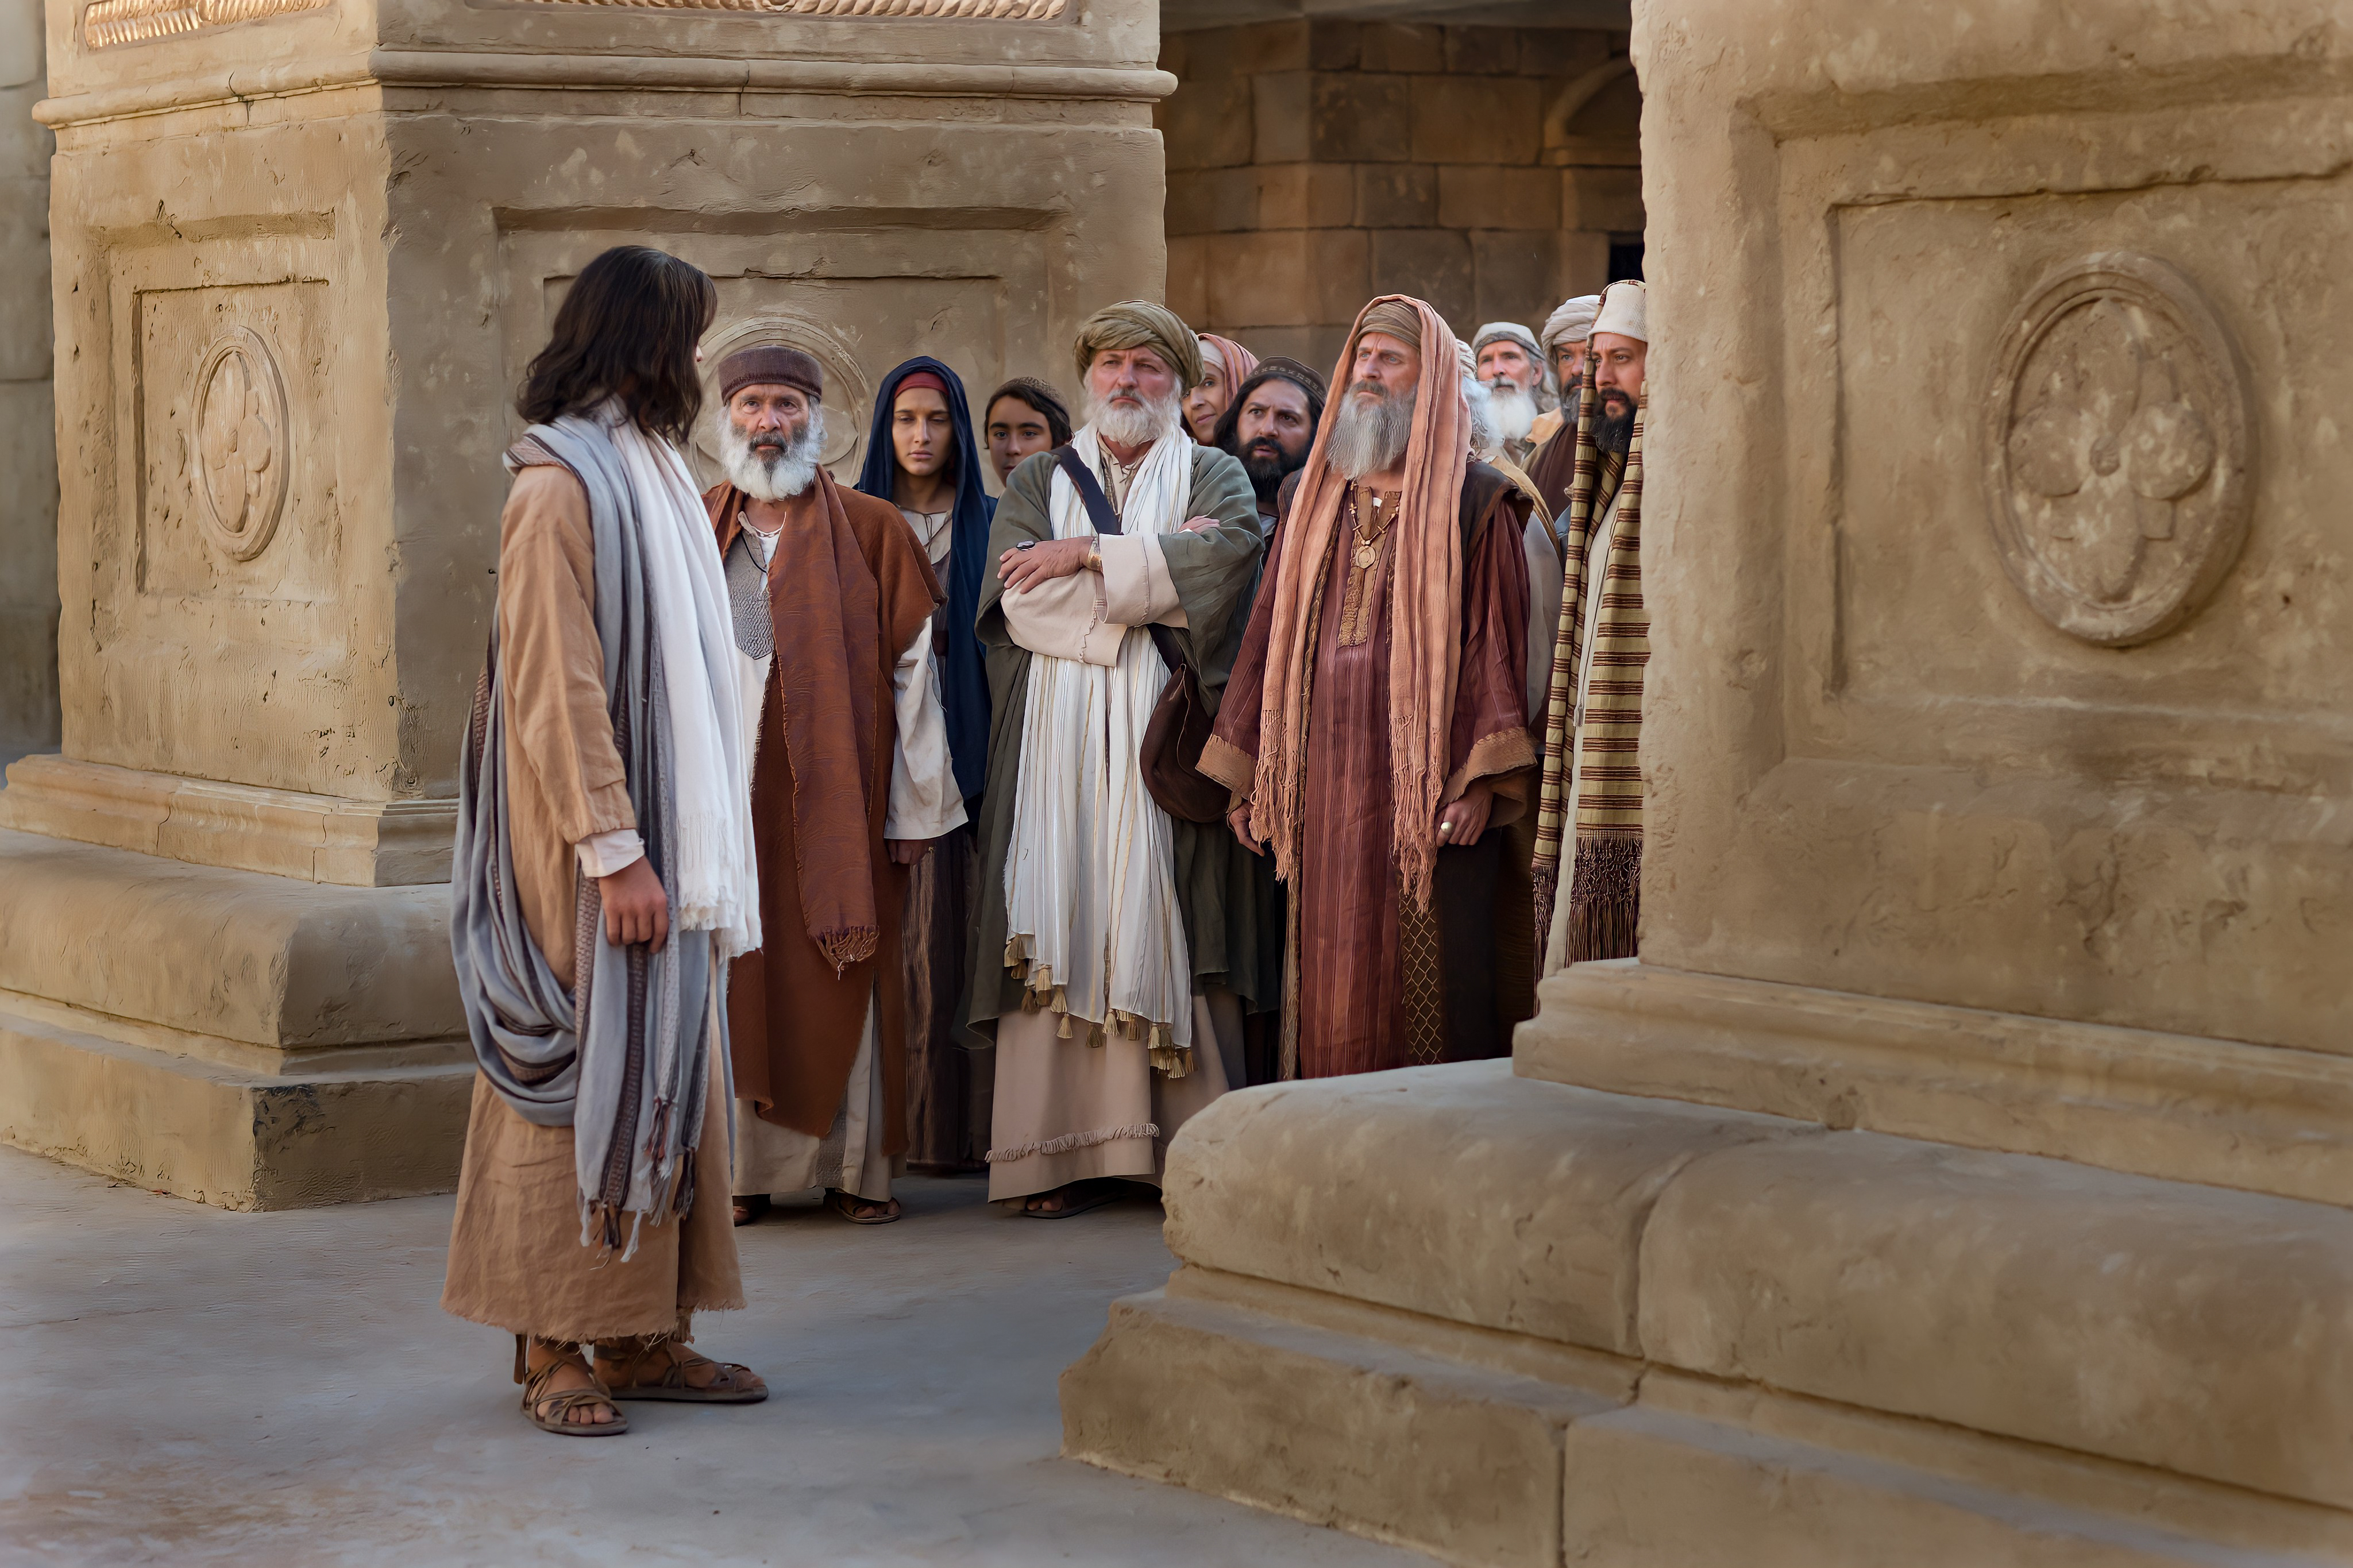 Jesus talking to the Chiefs